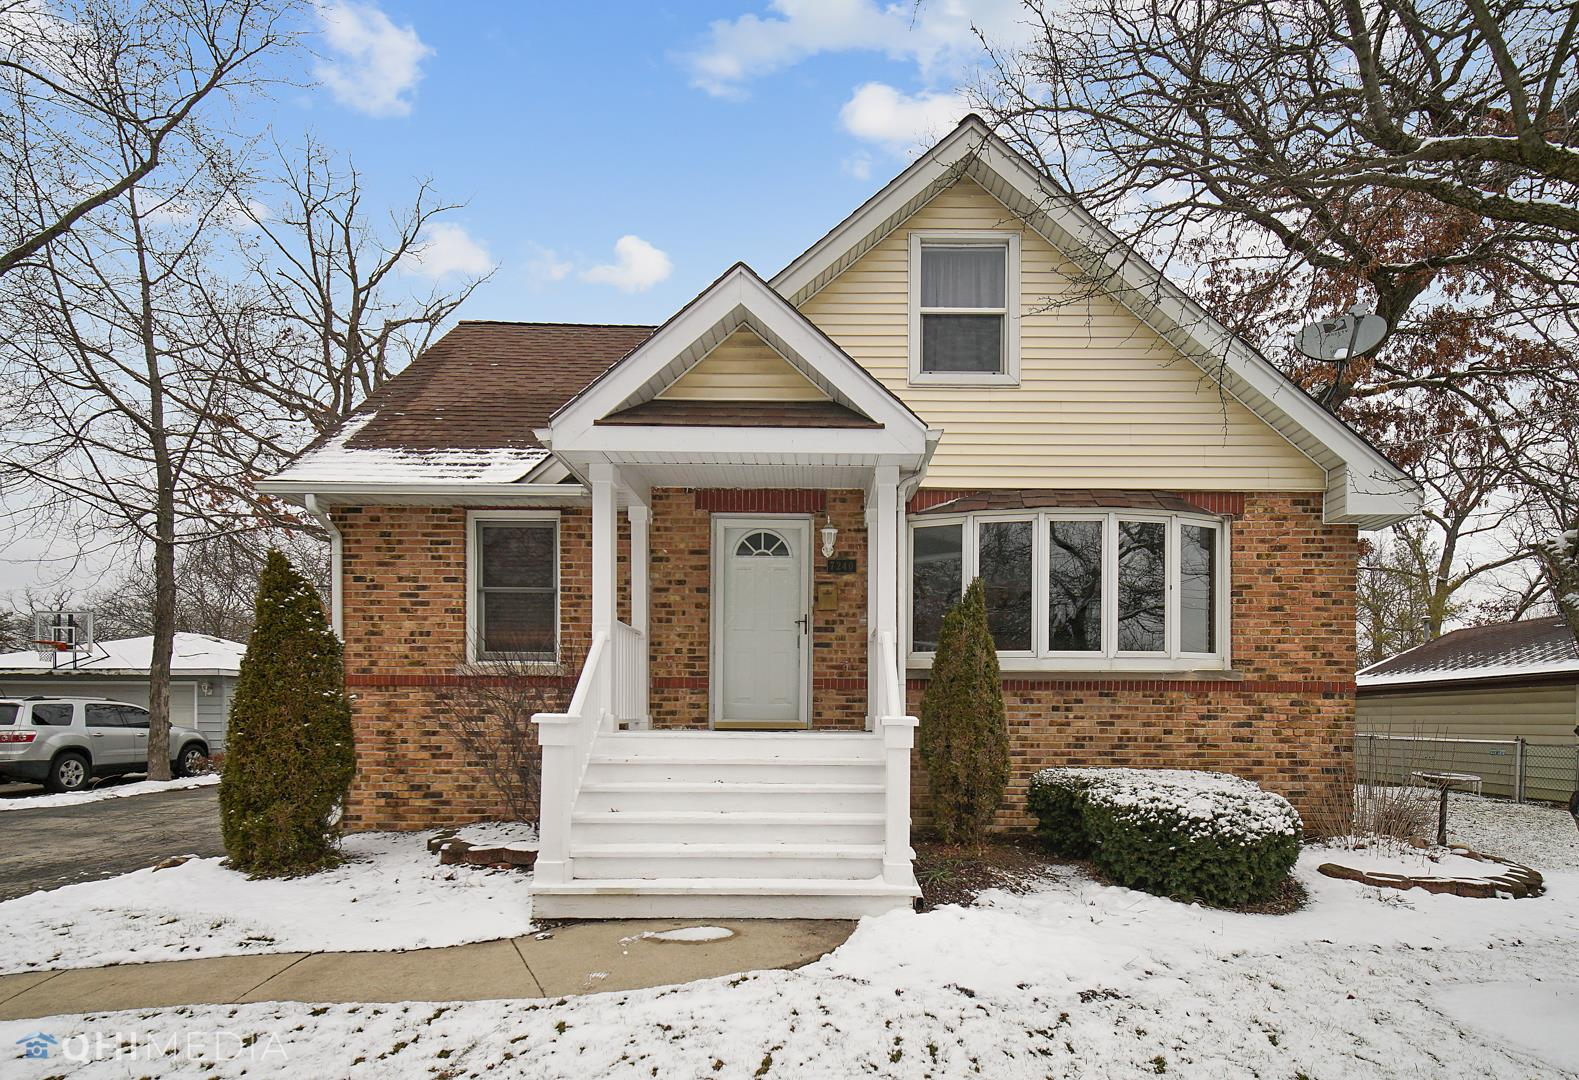 7240 W 110th Street, Worth, IL 60482 - #: 10969325